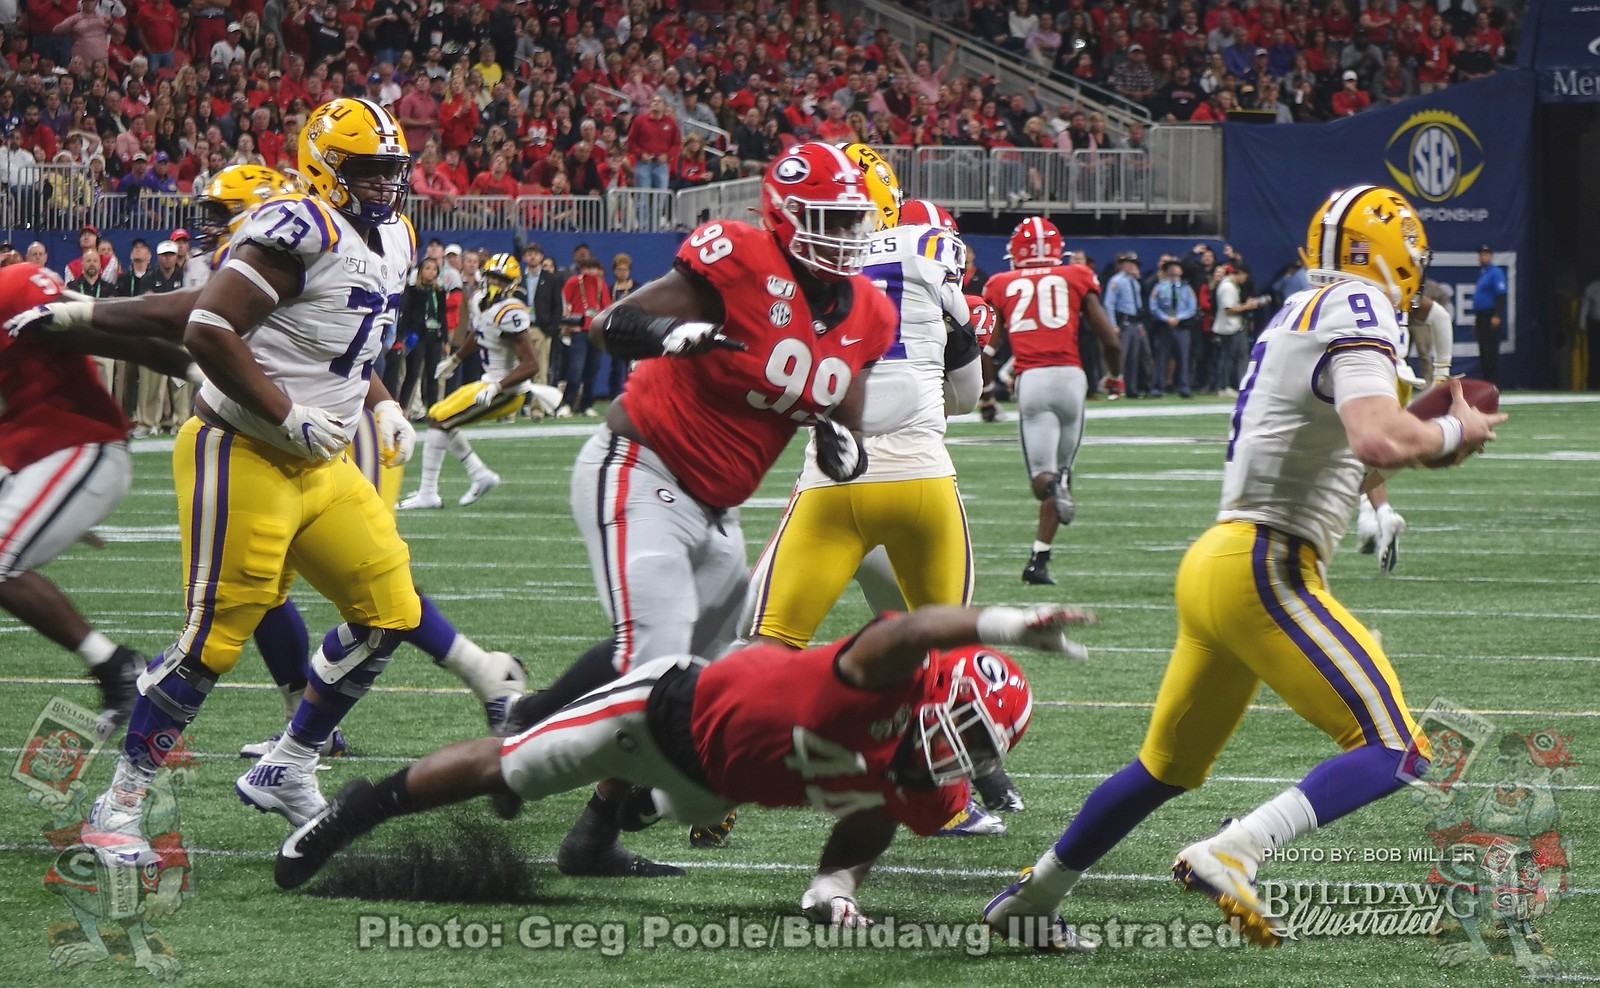 Tiger QB Joe Burrow (9) just escapes the grasp of the Dawgs' Travon Walker (44) and  Jordan Davis (99) during the third quarter of the 2019 SEC Championship game between Georgia and LSU on Saturday, December 7.